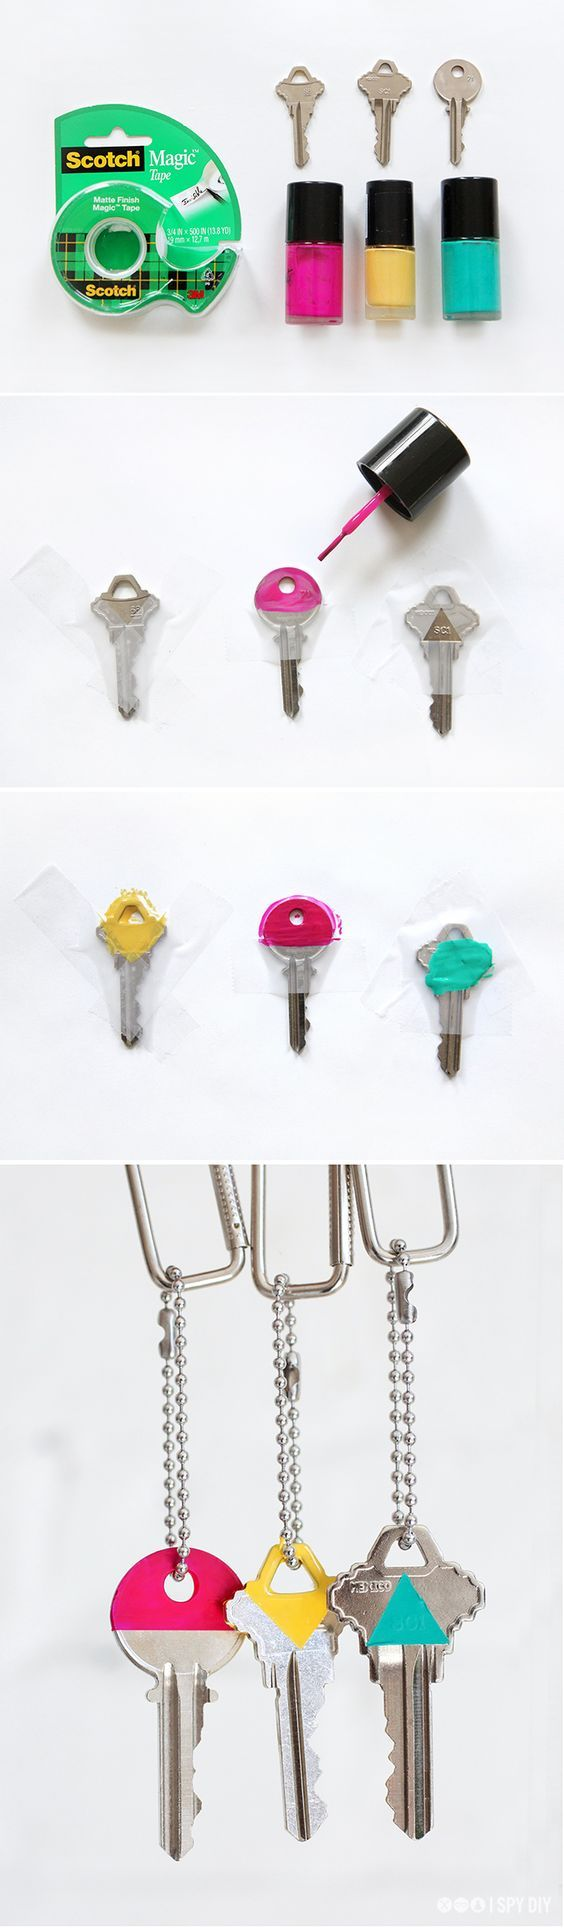 Differentiate your keys by painting them with nail polish